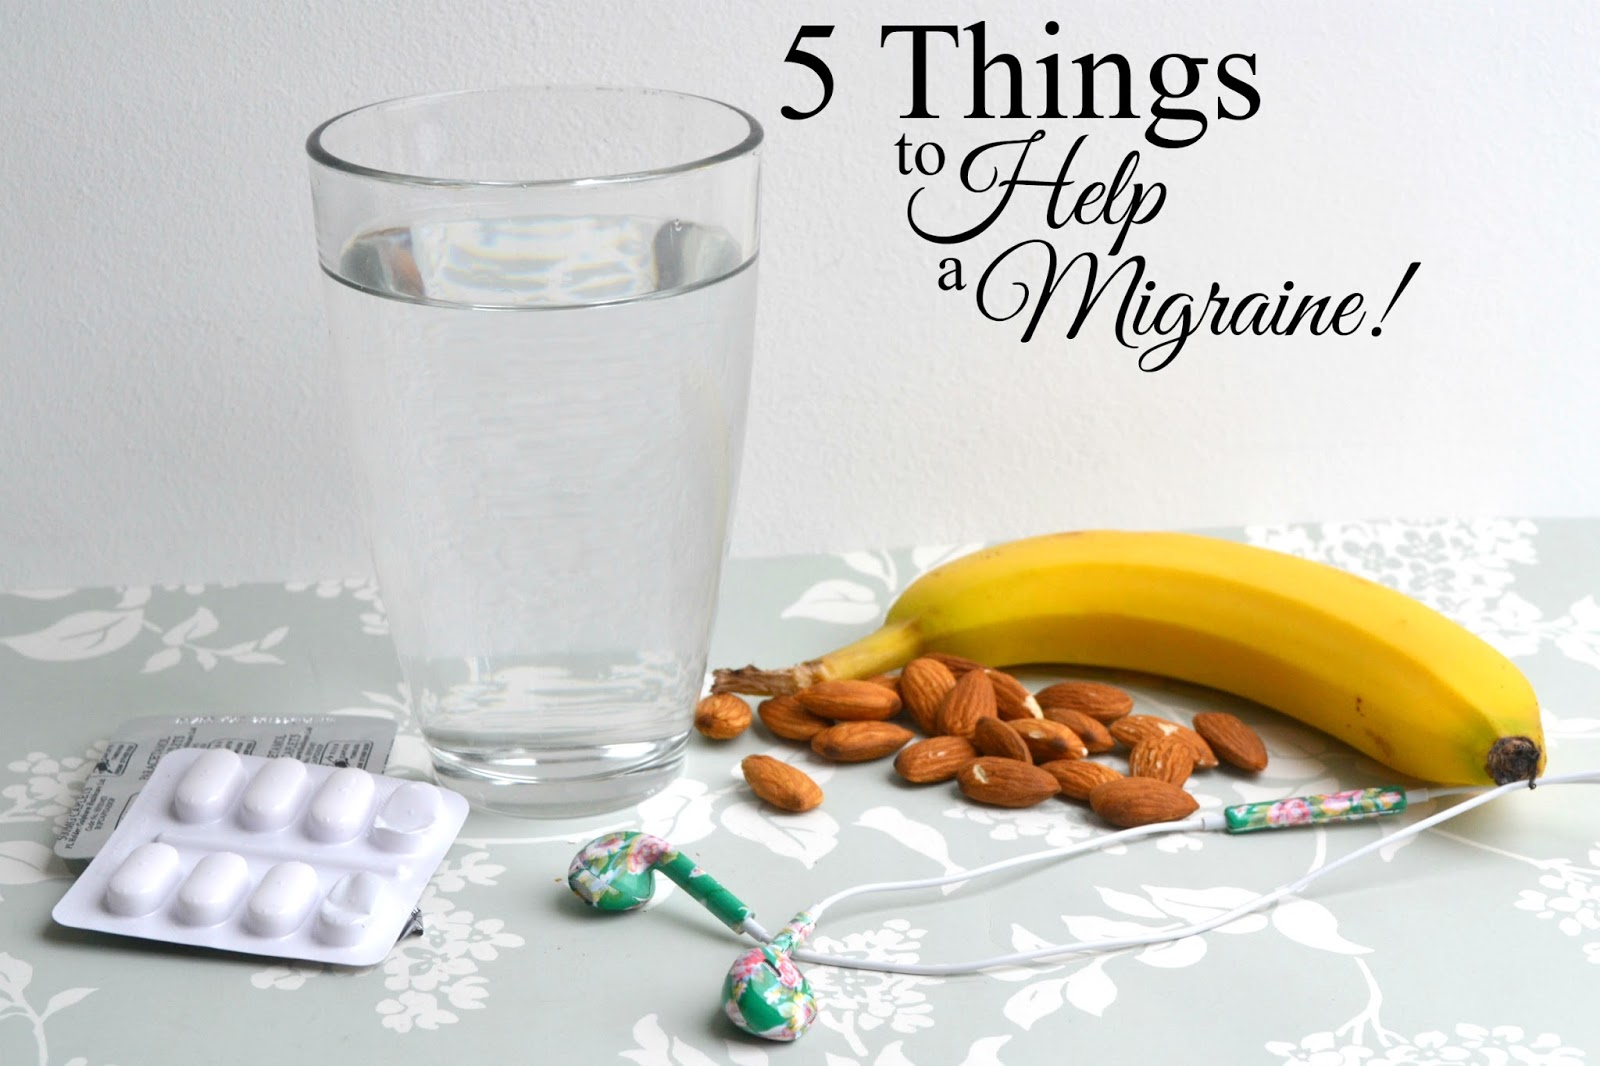 Migraine help: Painkillers, water, almonds, a banana and headphones.